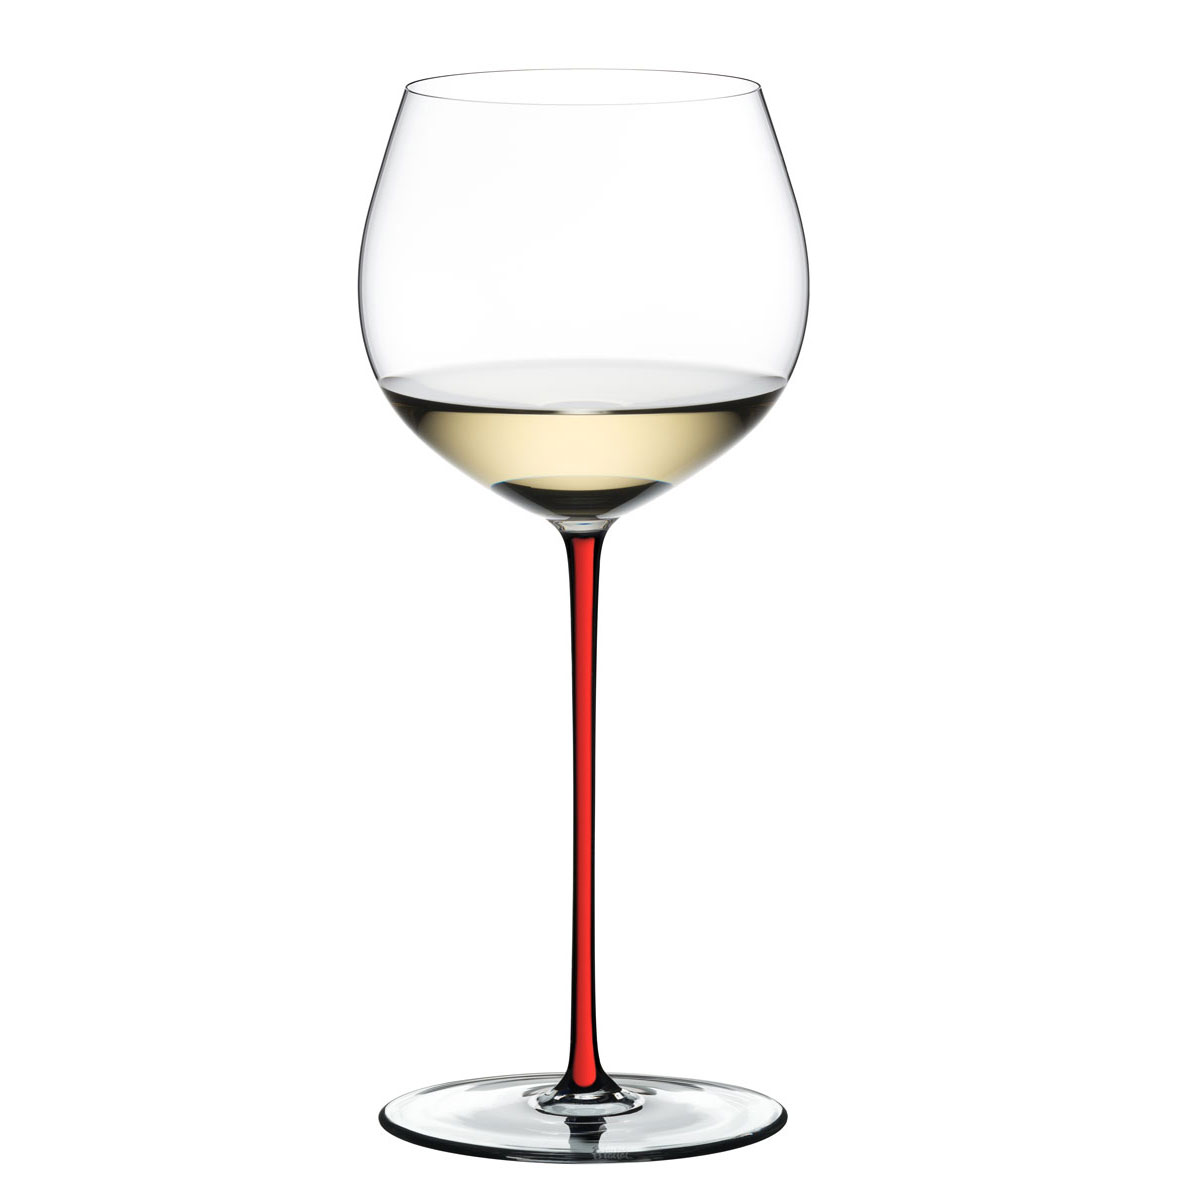 Riedel Fatto A Mano, Oaked Chardonnay Wine Glass, Red